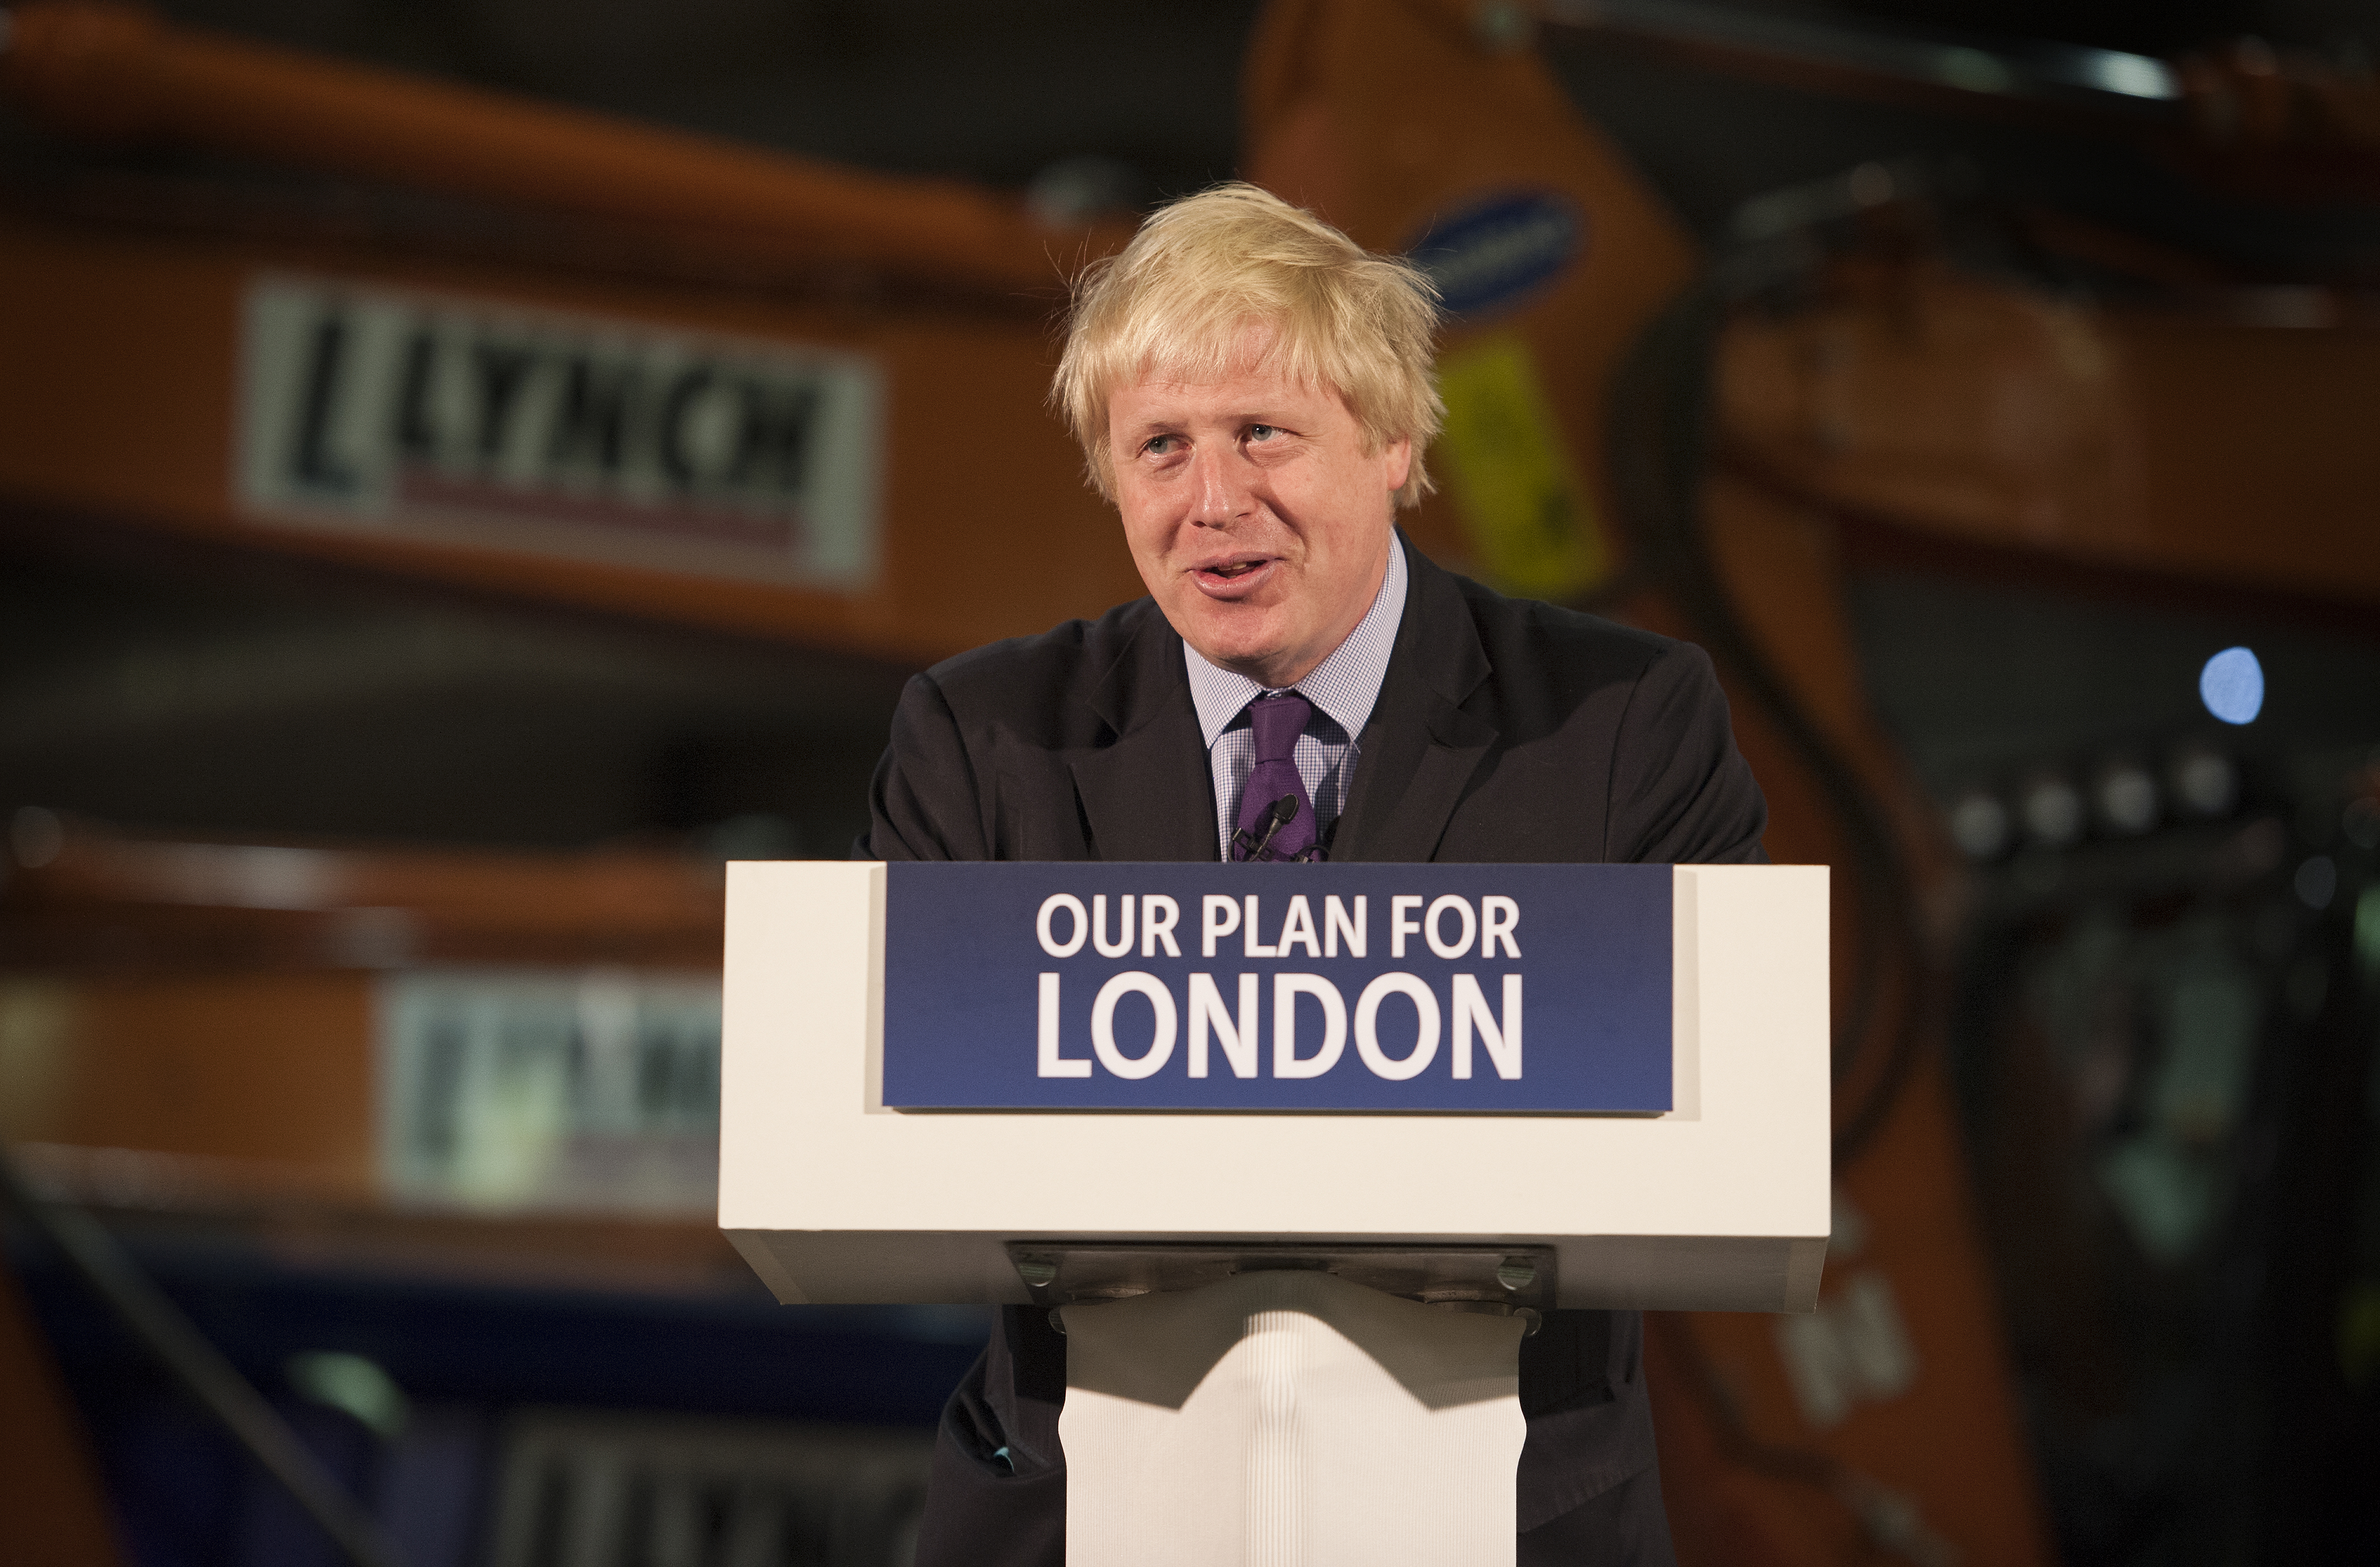 Mayor of London Boris Johnson speaks at Lynch Plant Hire Depot in North West London, on April 24, 2015.